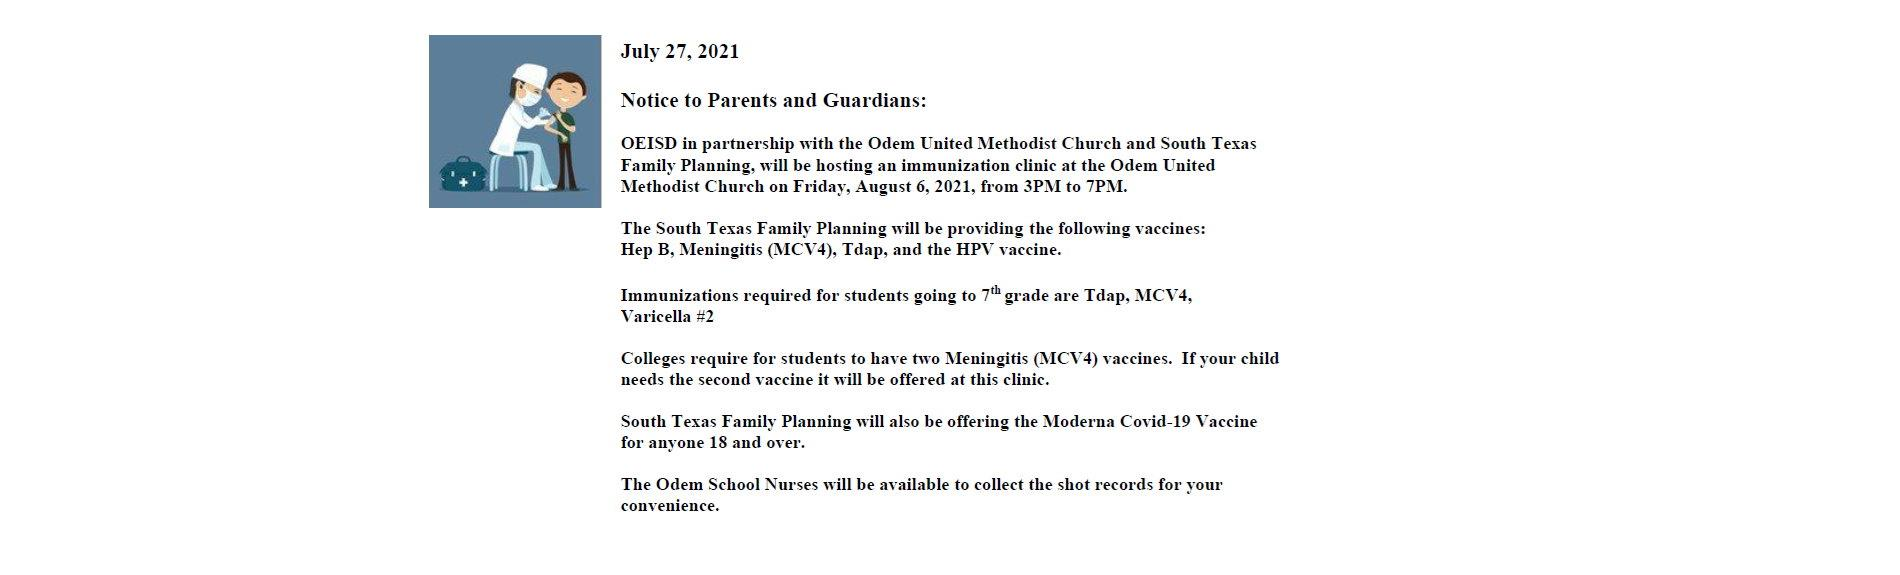 Notice to Parents and Guardians